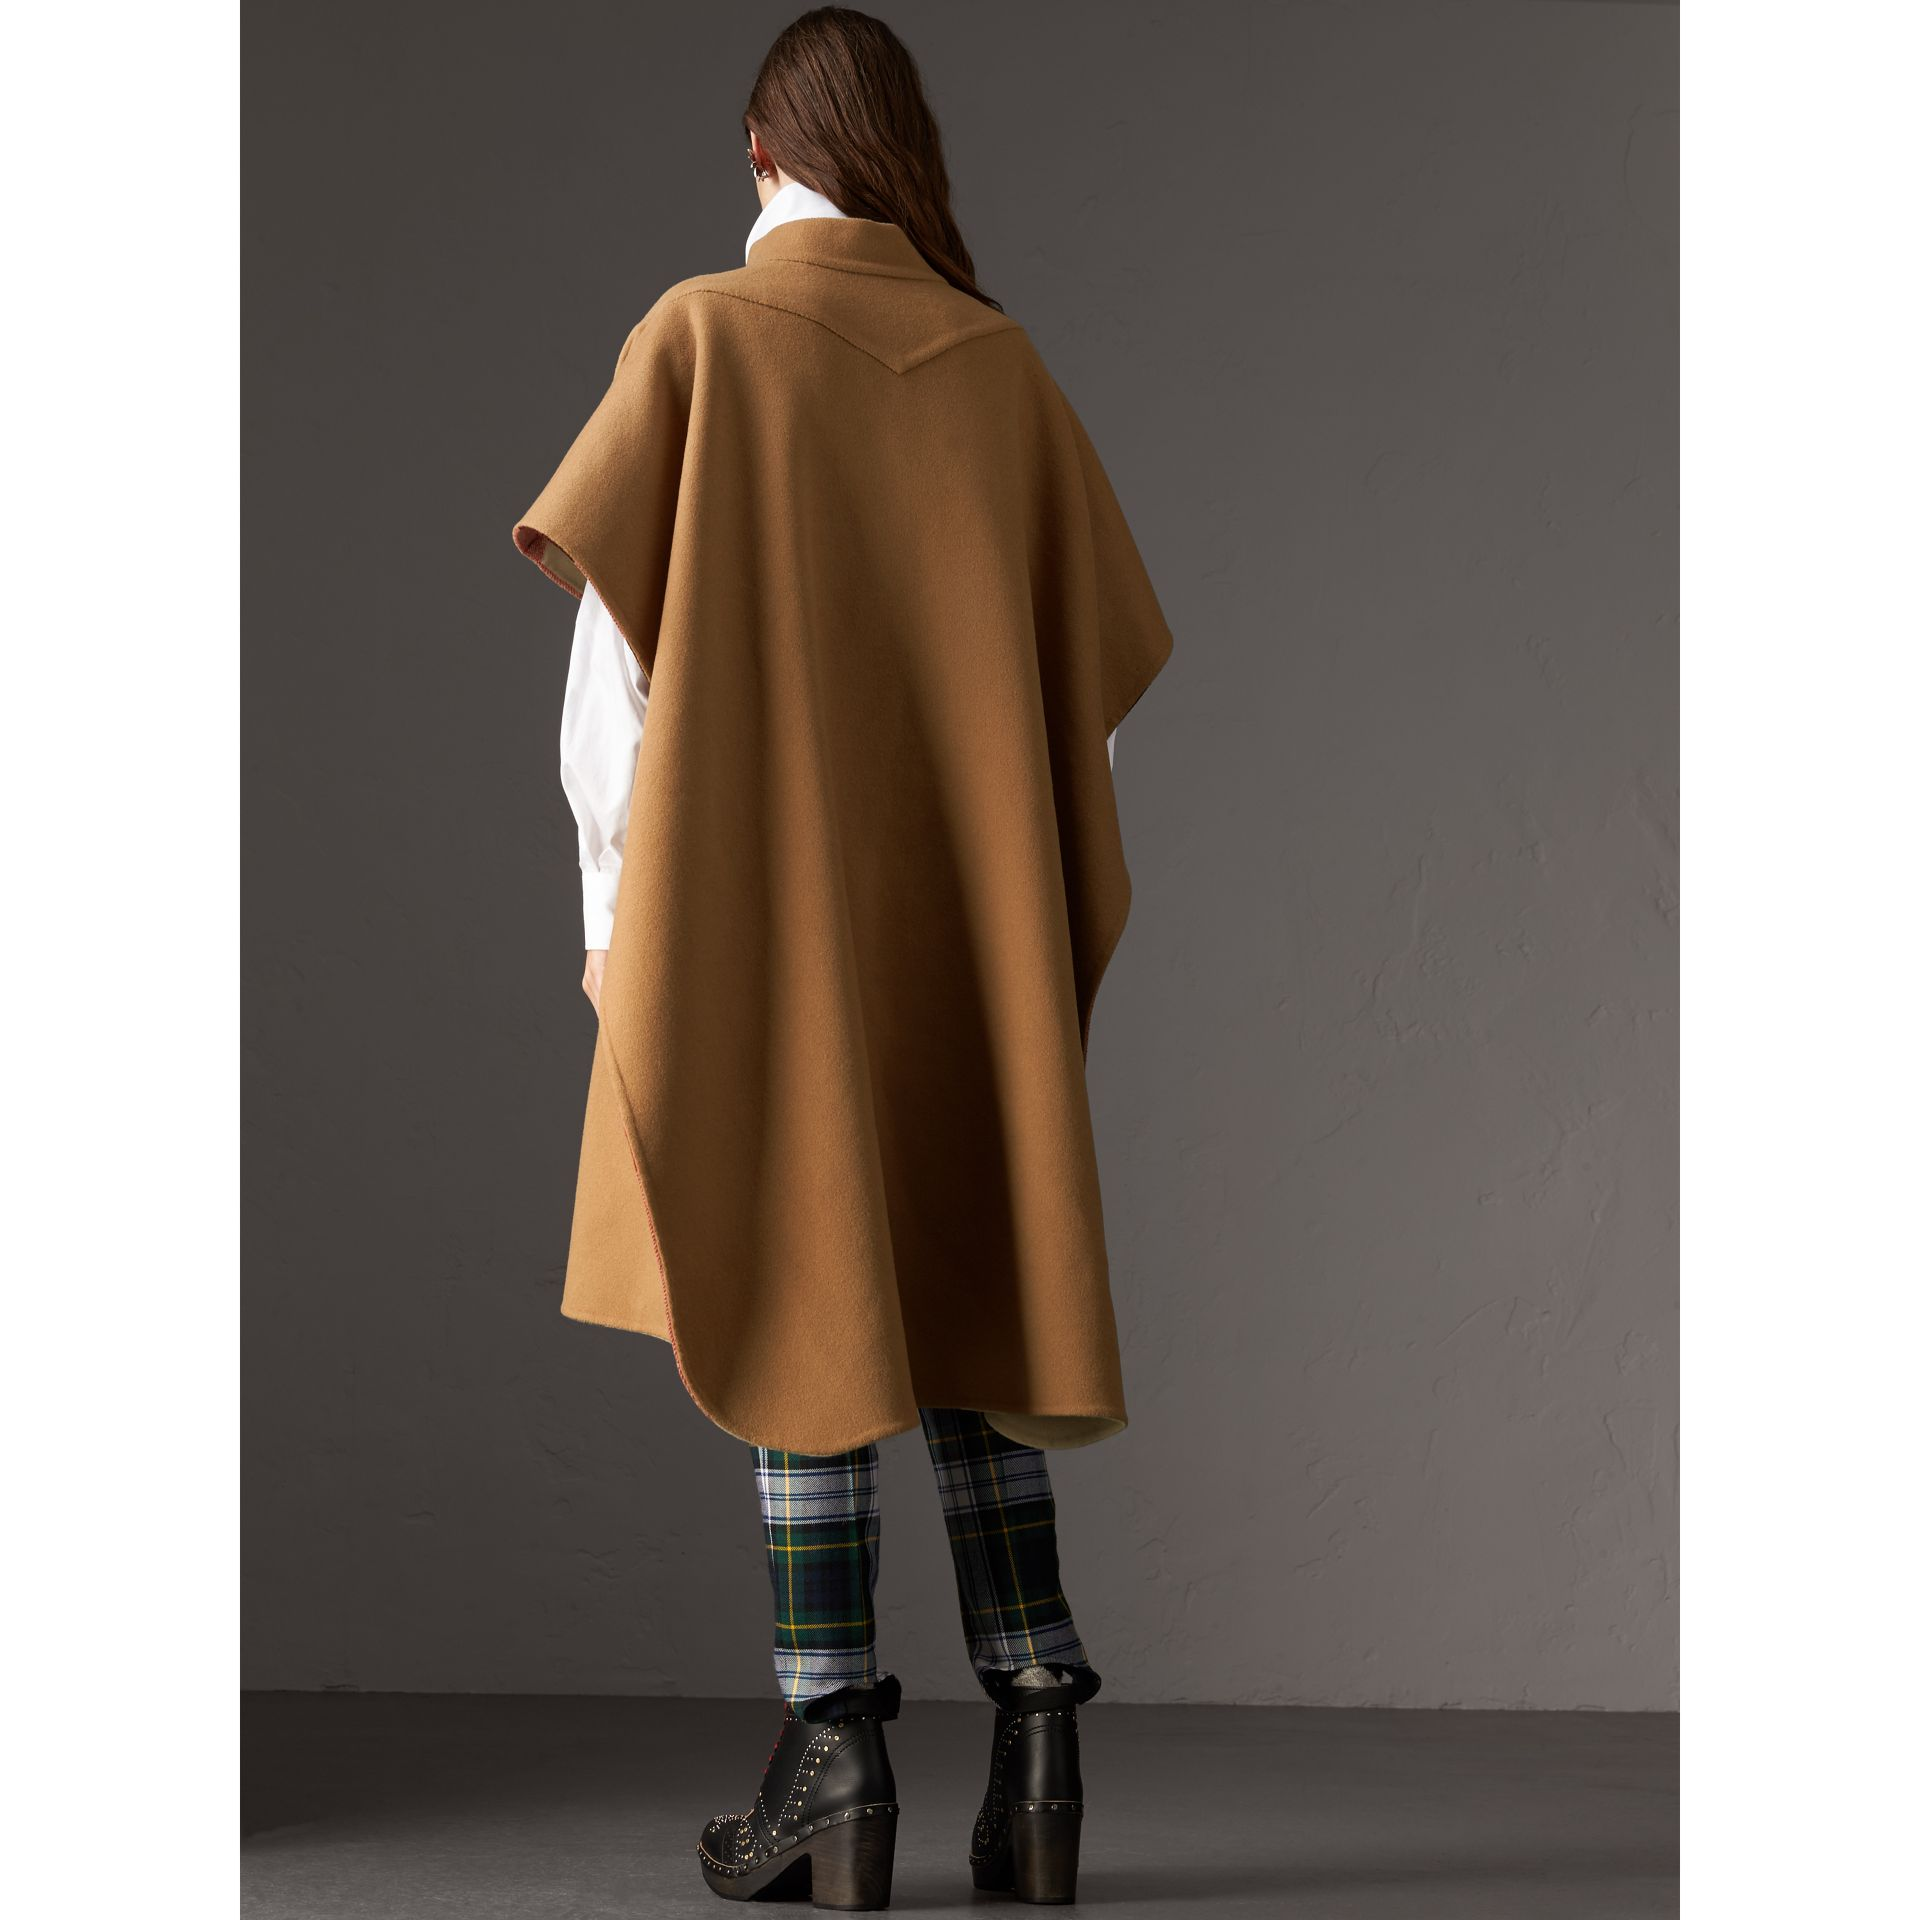 Reversible Check Oversized Poncho in Camel - Women | Burberry - gallery image 2